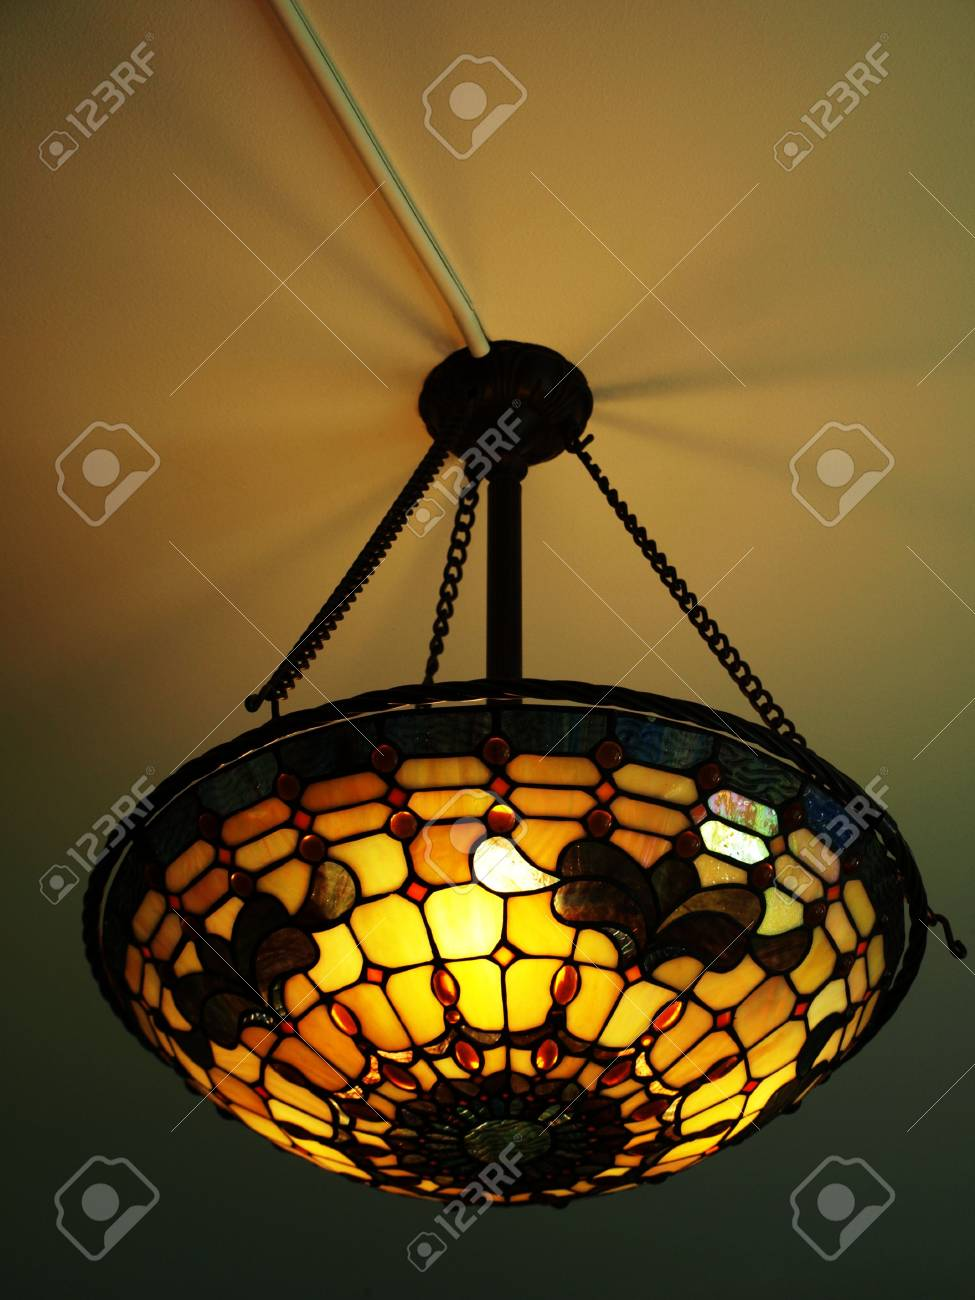 Photo of a beautiful lit tiffany style ceiling lamp in warm and